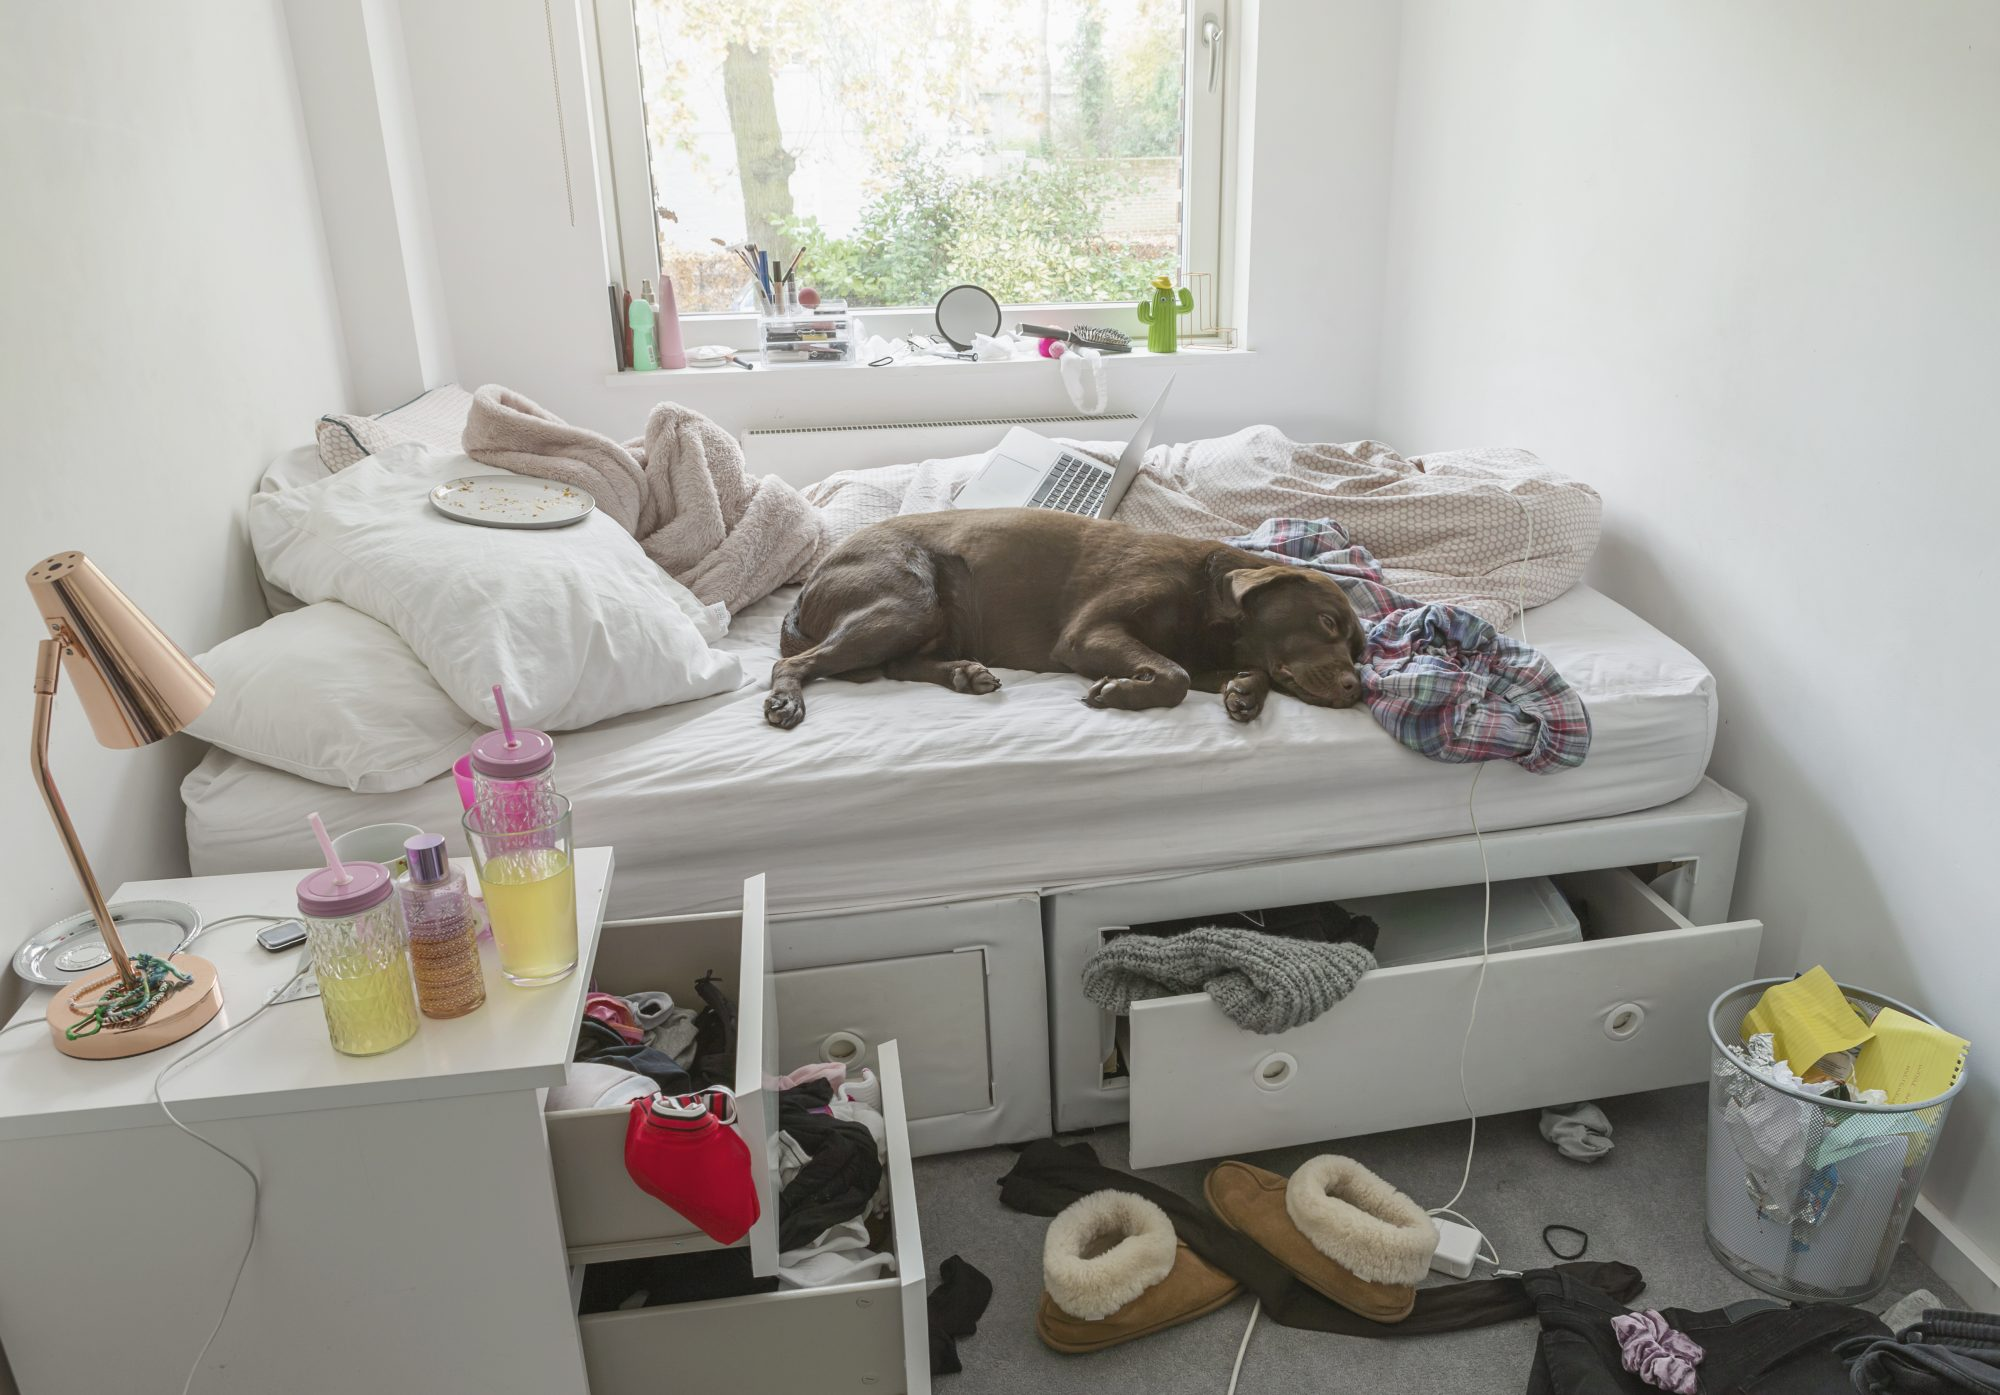 Dog lying on bed in teenagers messy bedroom